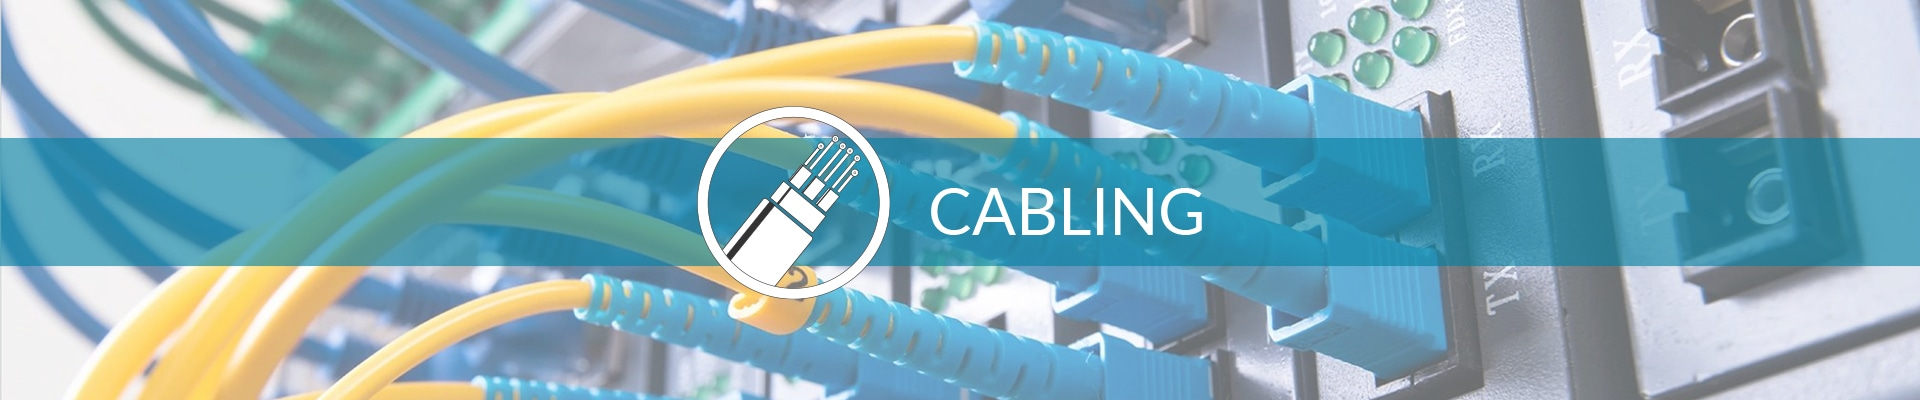 GBS Banner for Cabling